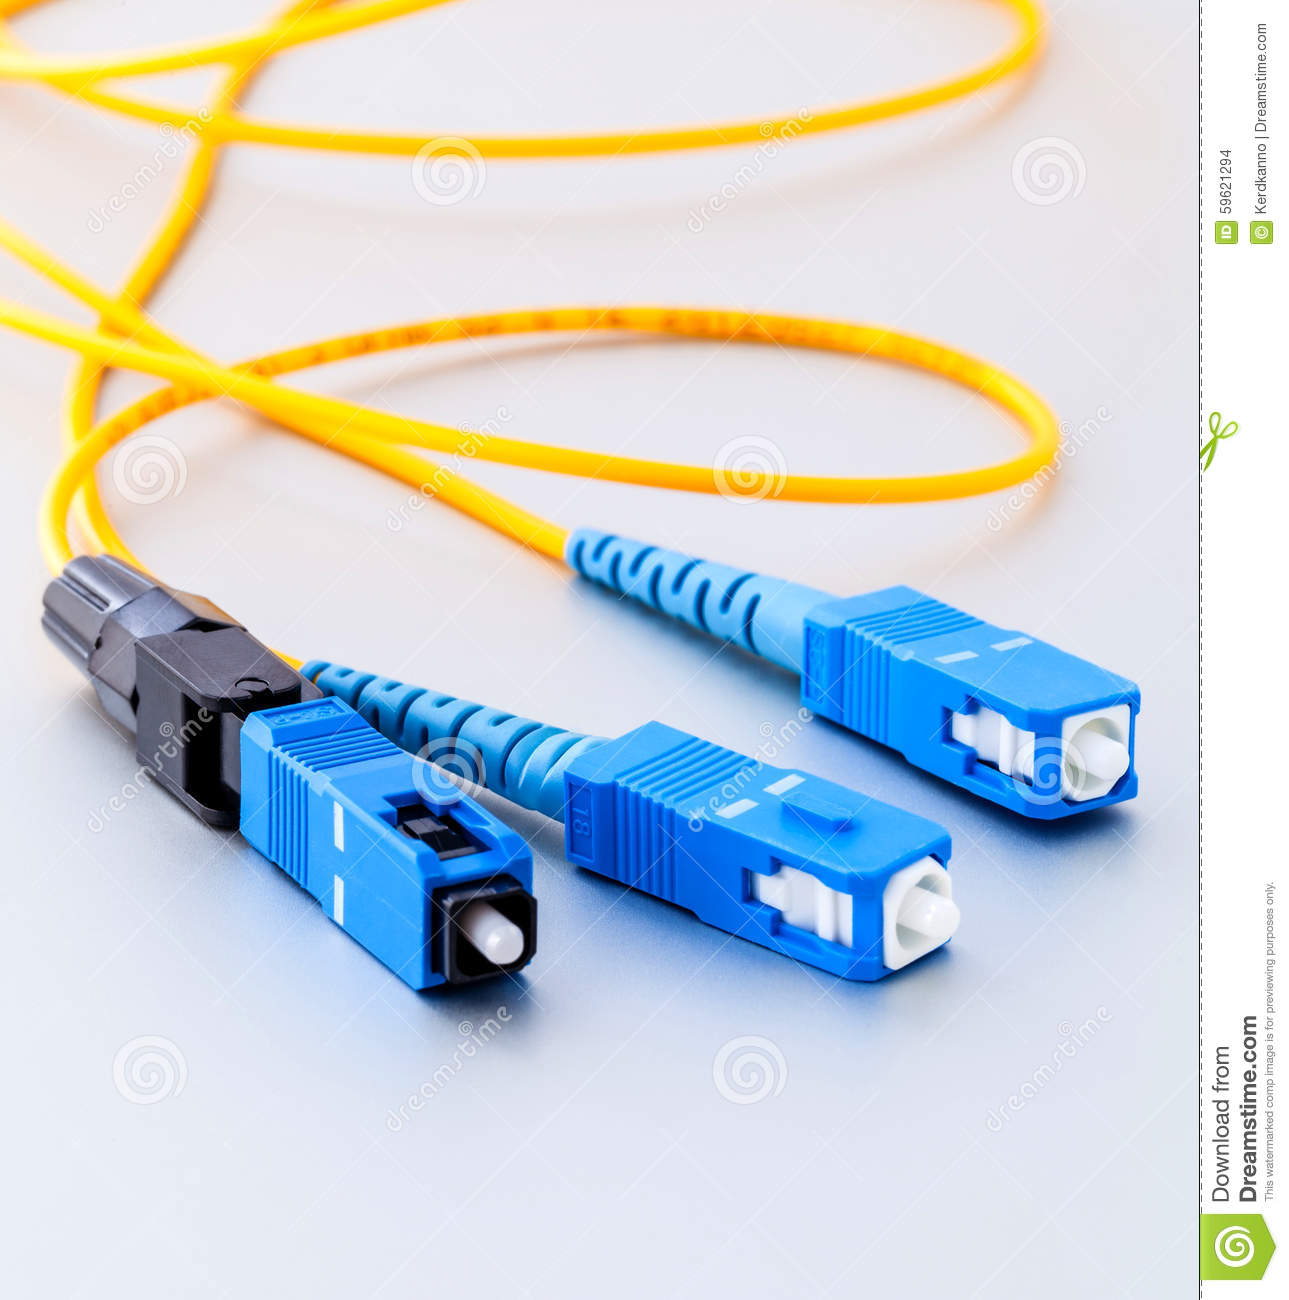 Fiber Optics Connectors Symbolic Photo For Fast Internet   Stock